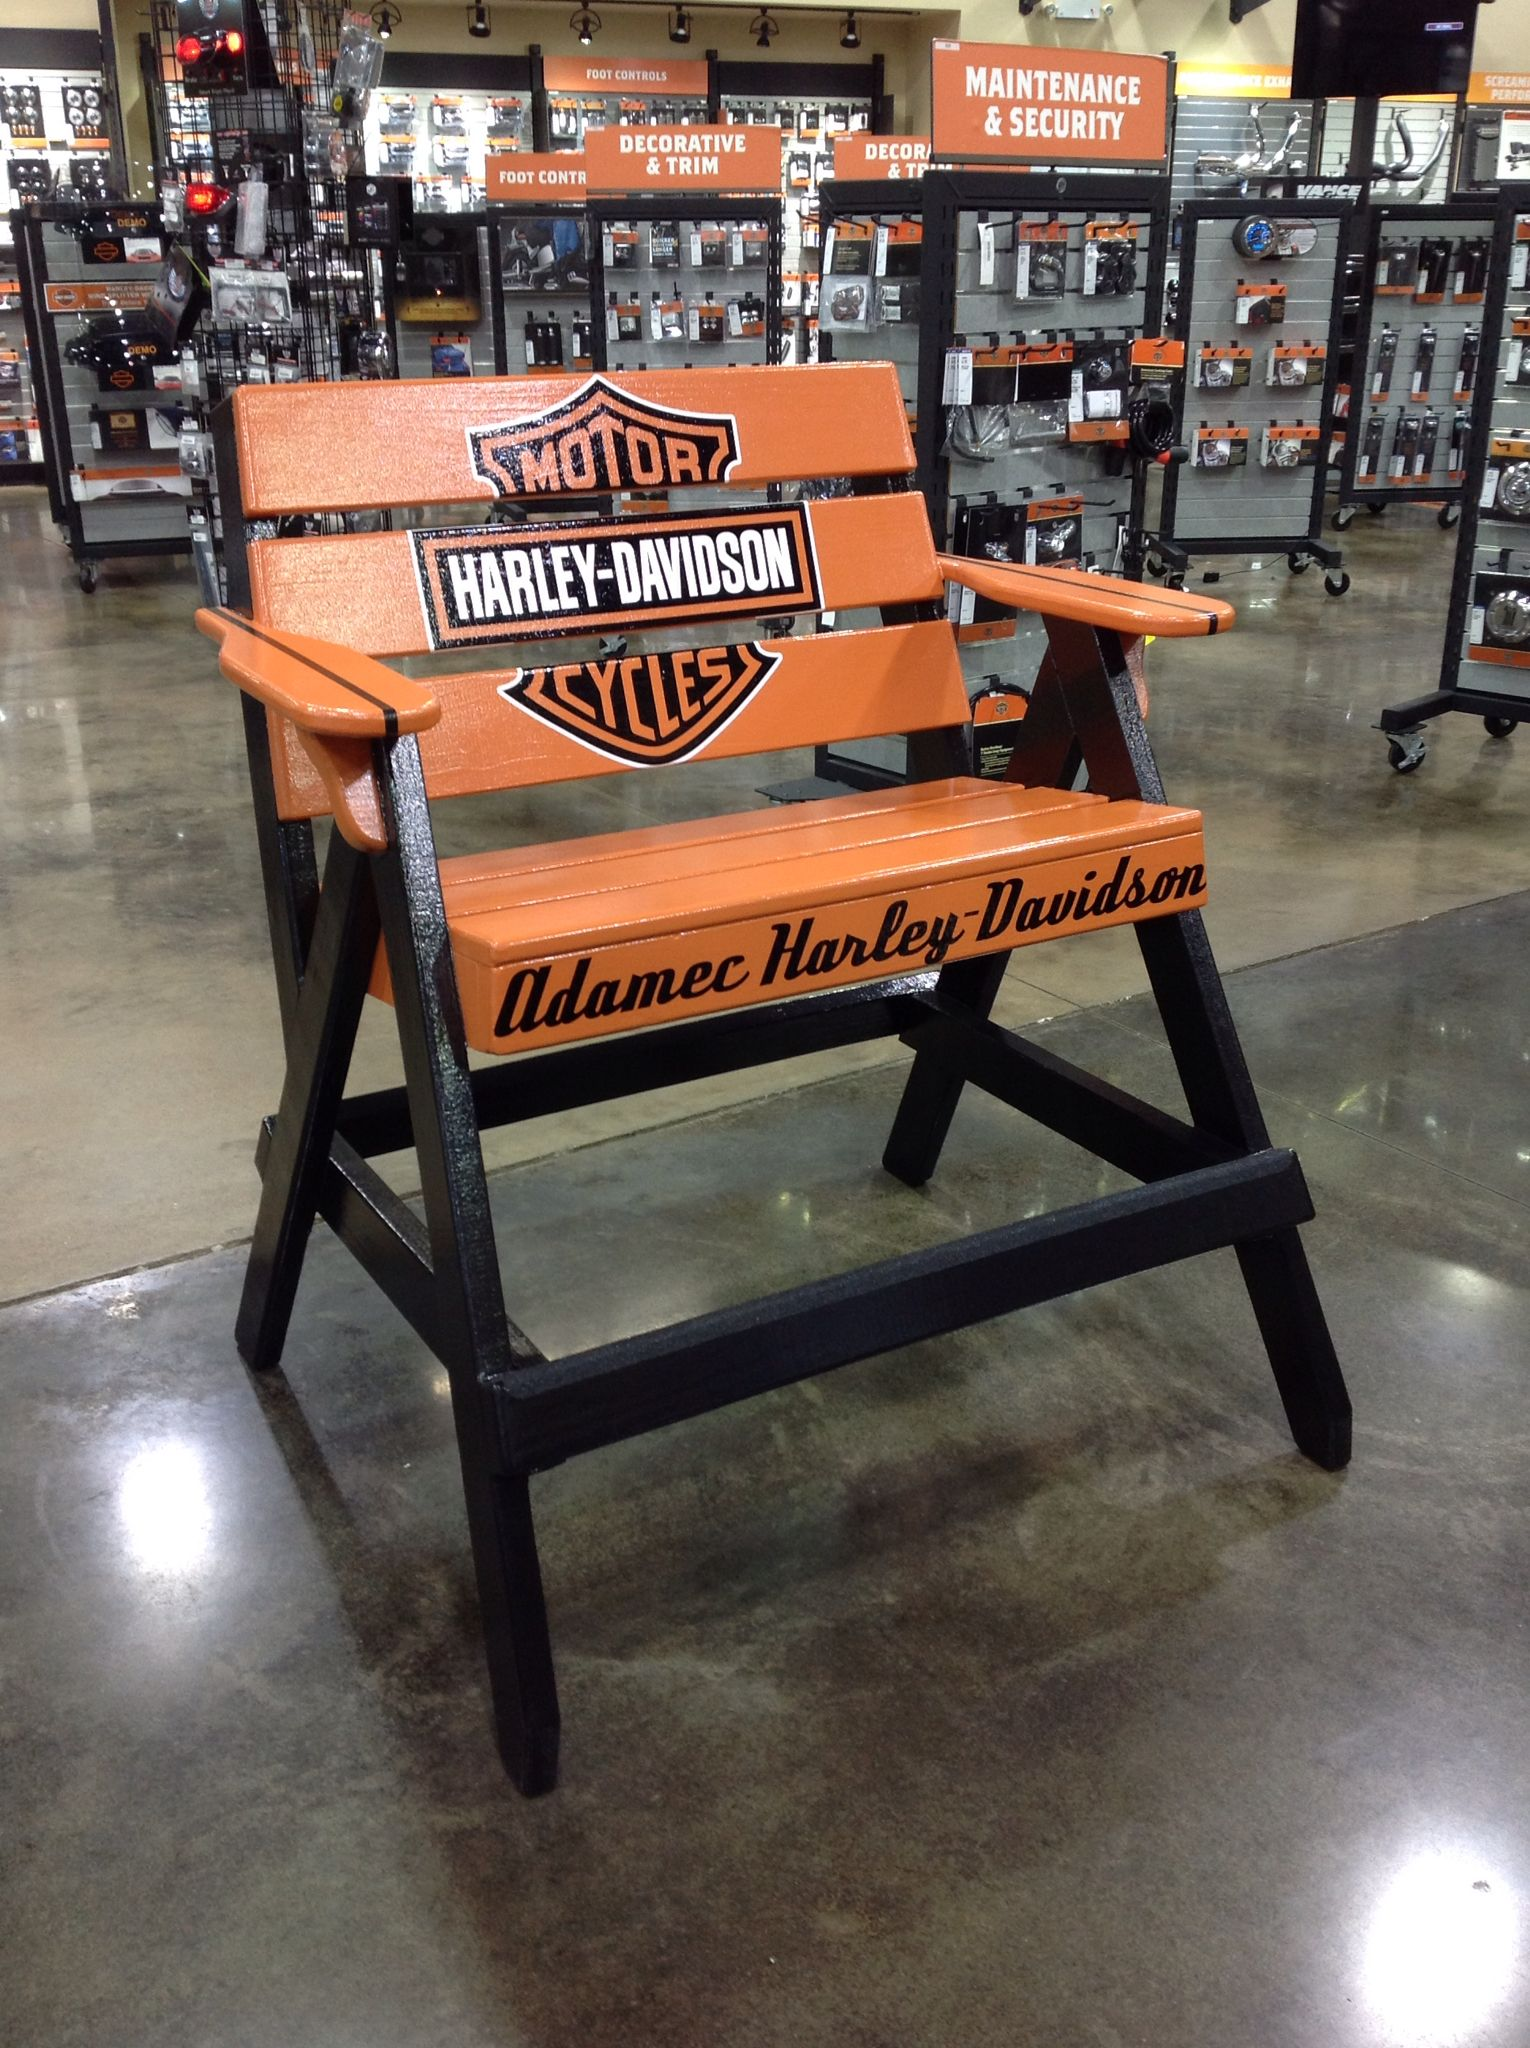 Harley Davidson Chairs Decoration De Noel Harley Davidson